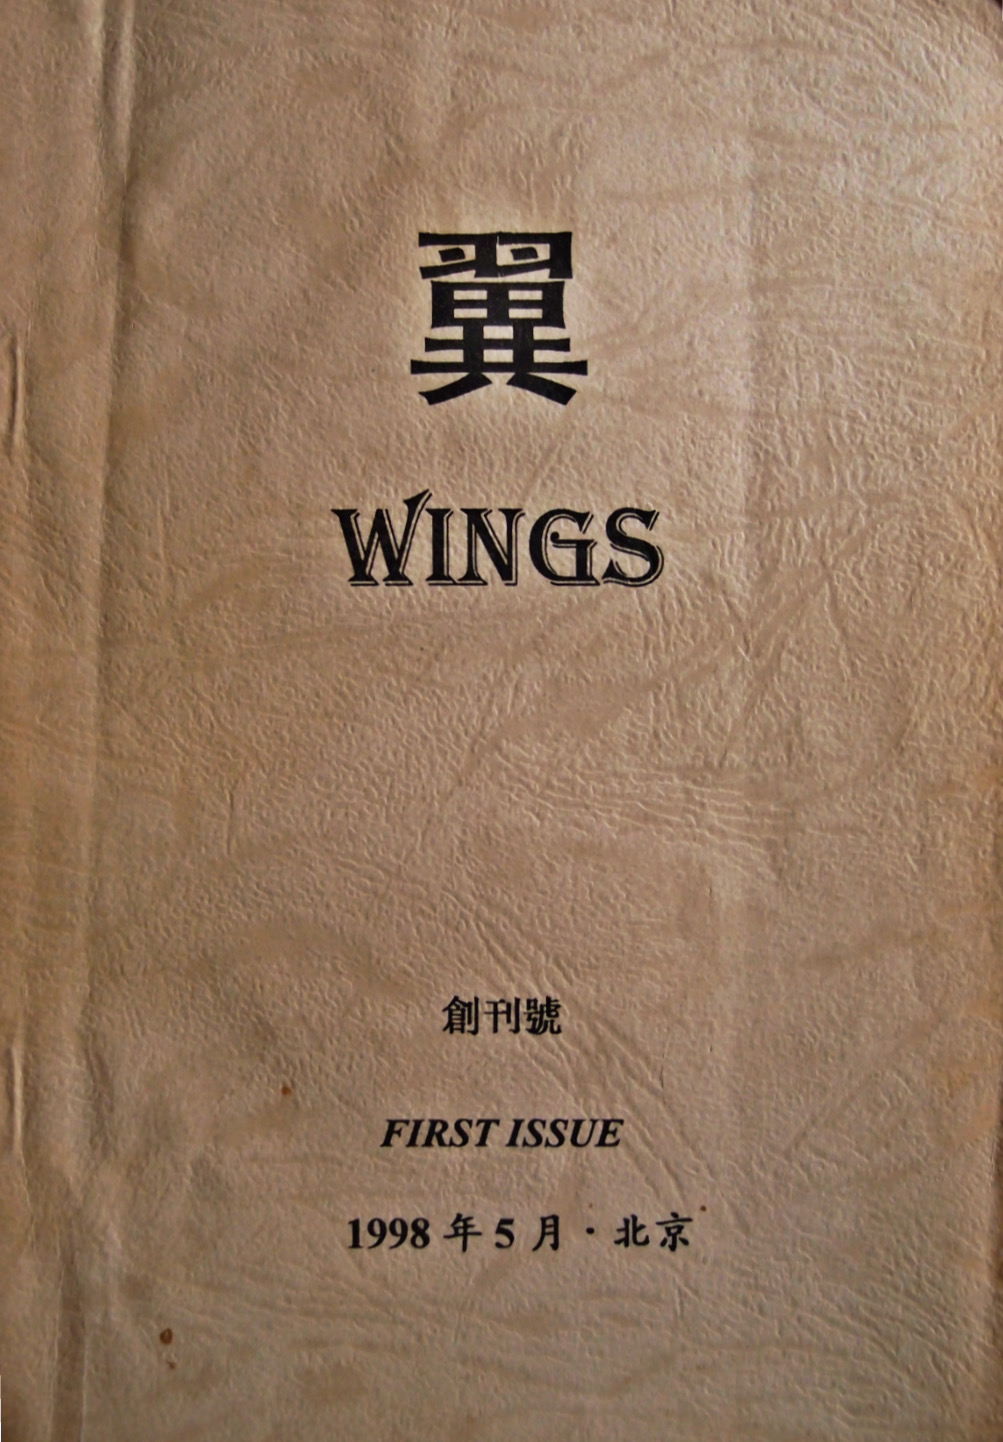 Walk On The Wild Side Snapshots Of Chinese Poetry Scene Mclc Reassembled Number 5 Is Alive Again Cru Jones Society Wings No 1 1998